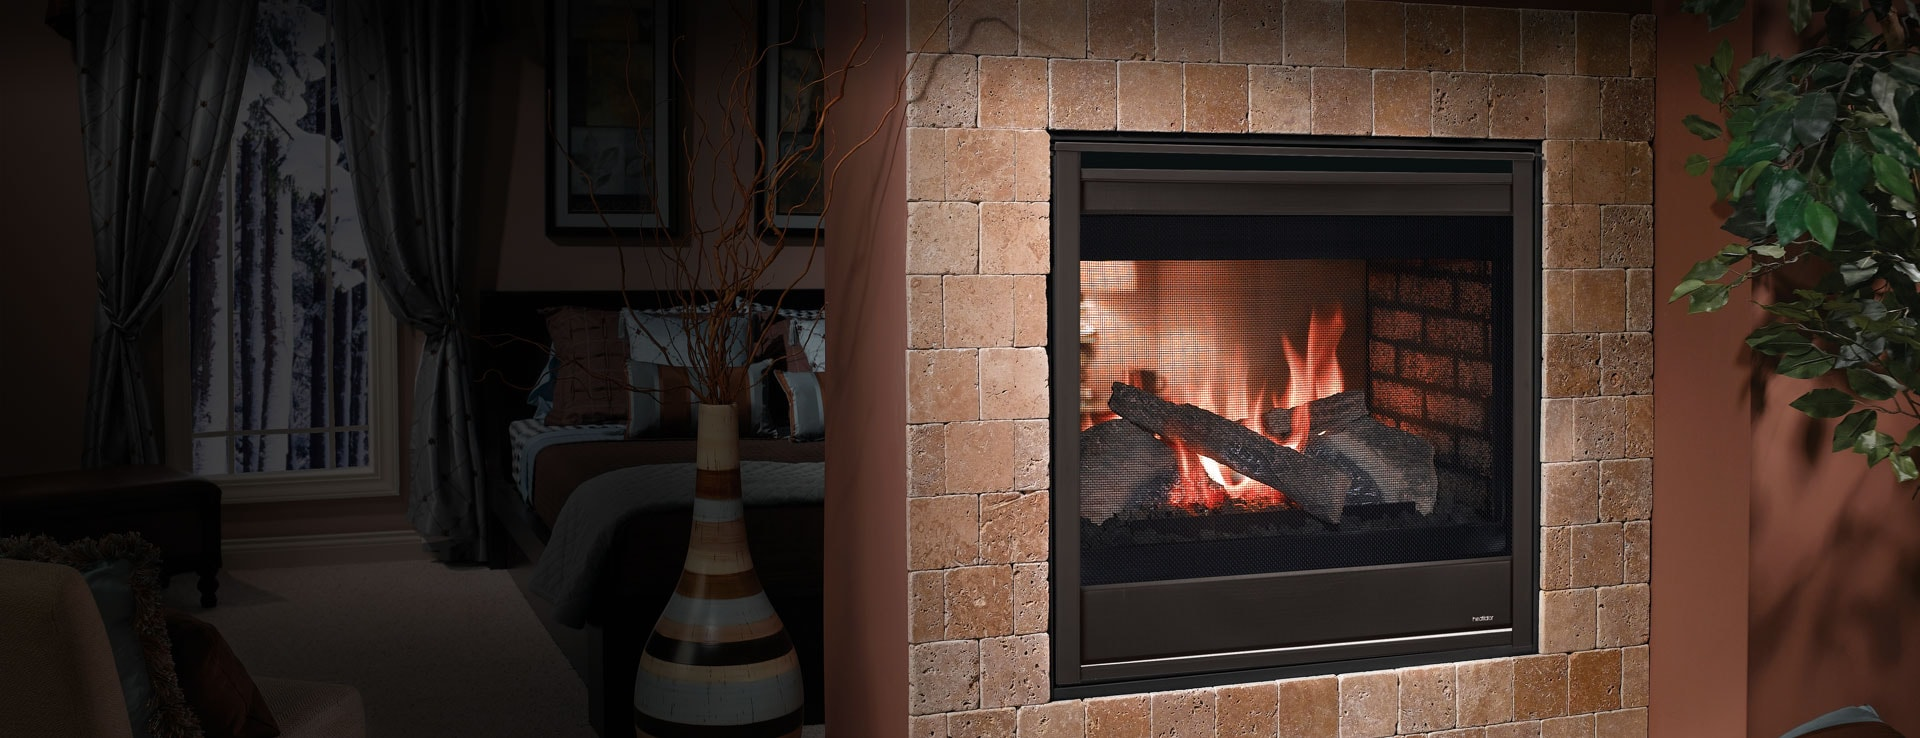 Rough Framing for Gas Fireplace New Product Specifications